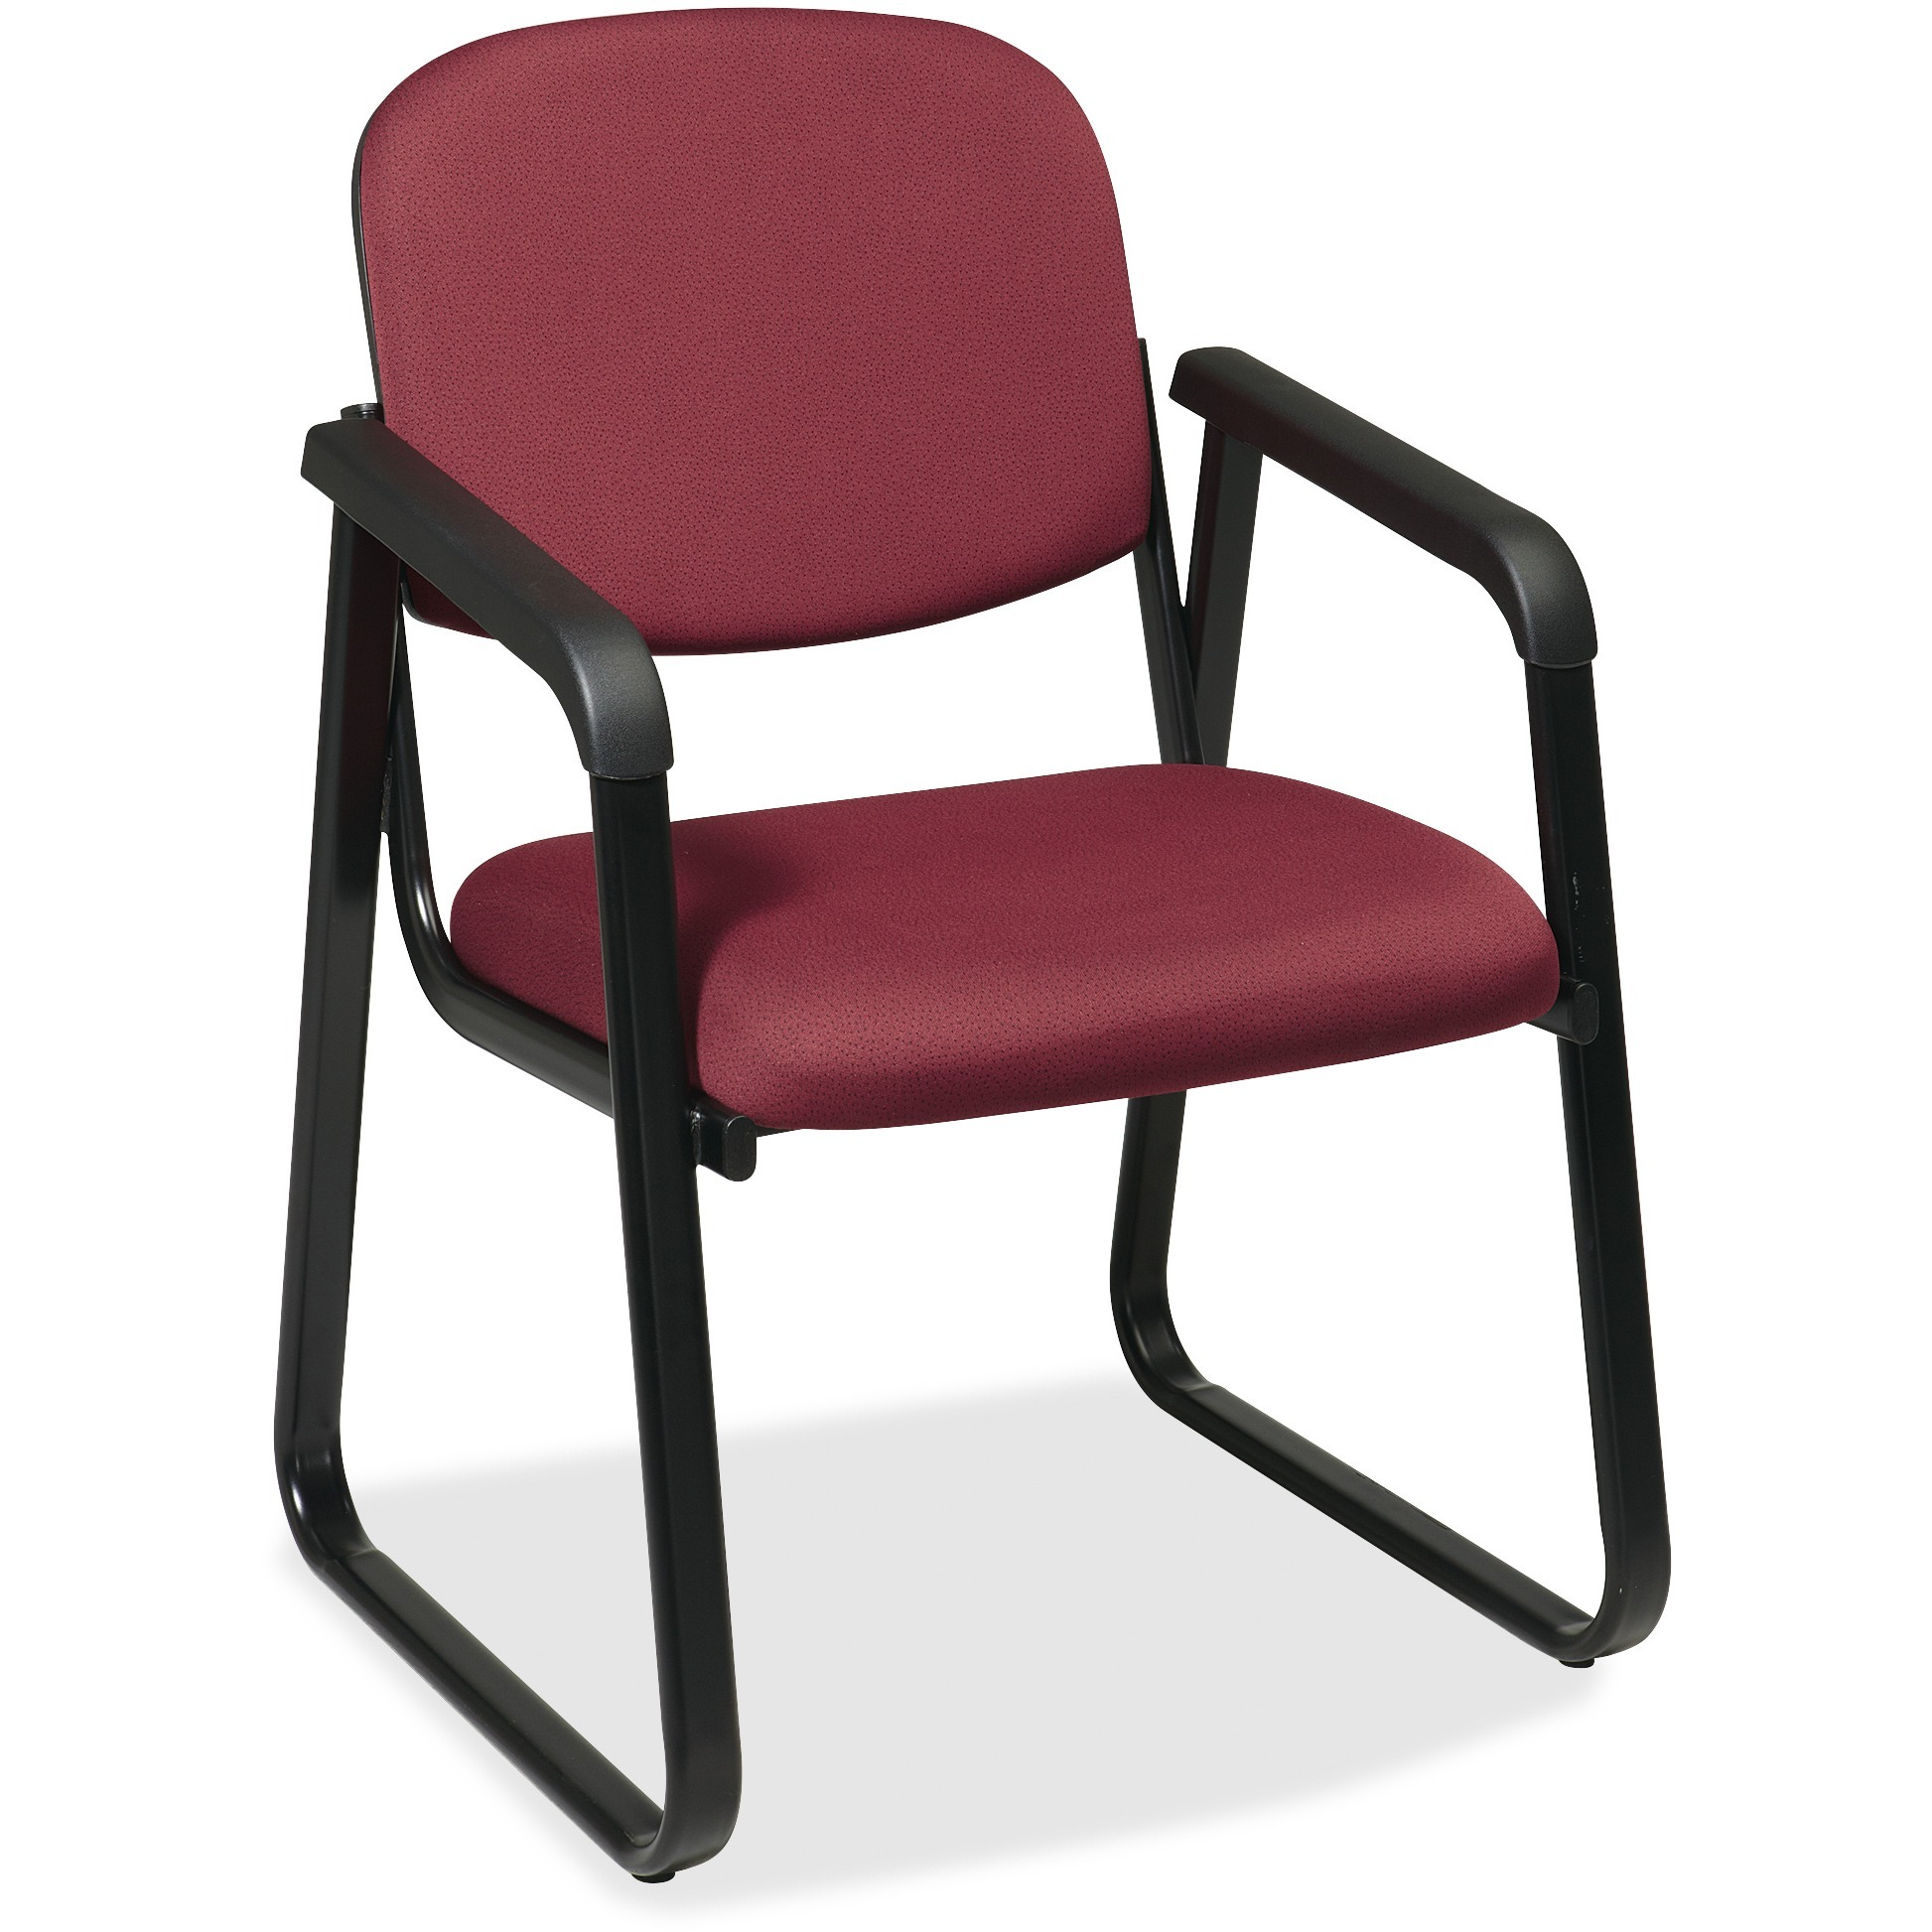 Office Star, OSPV441074, V4410 Deluxe Sled Base Arm Chair, 1 Each, Burgundy